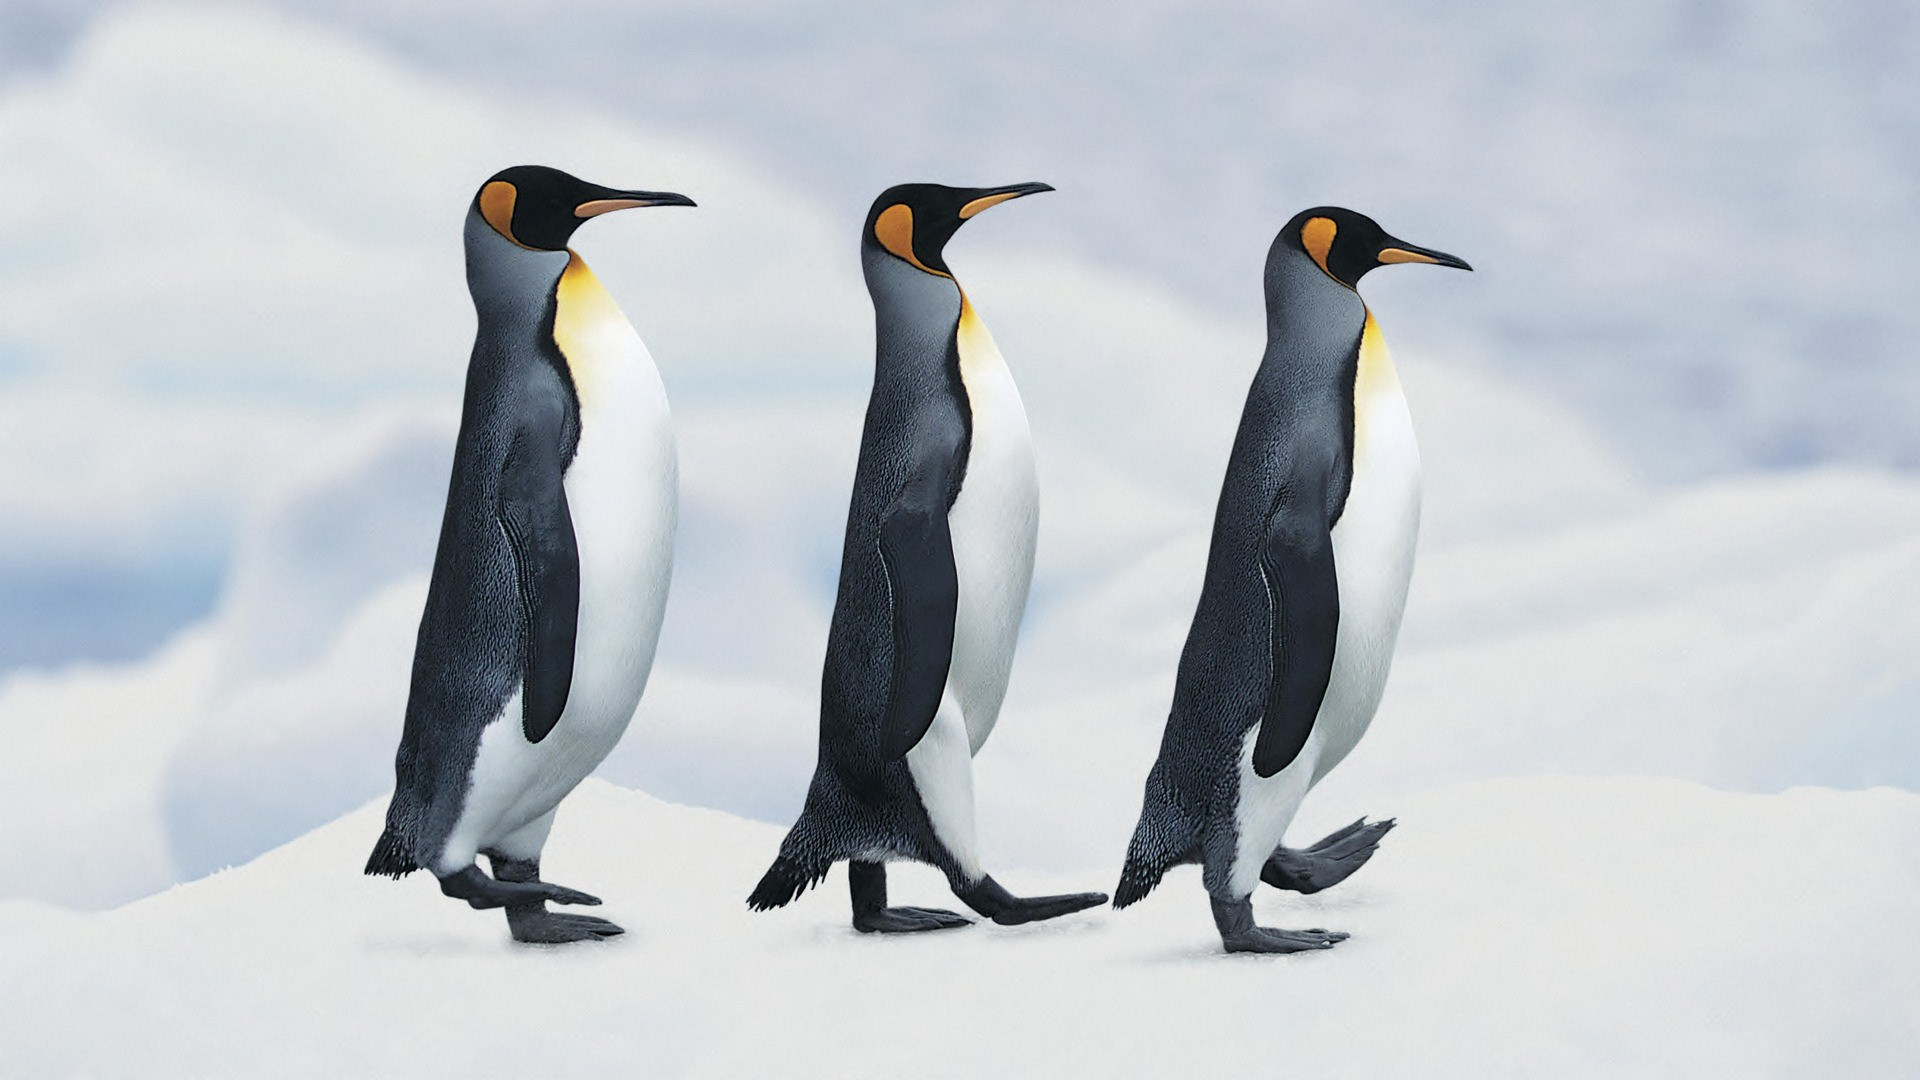 Funny Penguin Download wallpaper Gallery 1920x1080